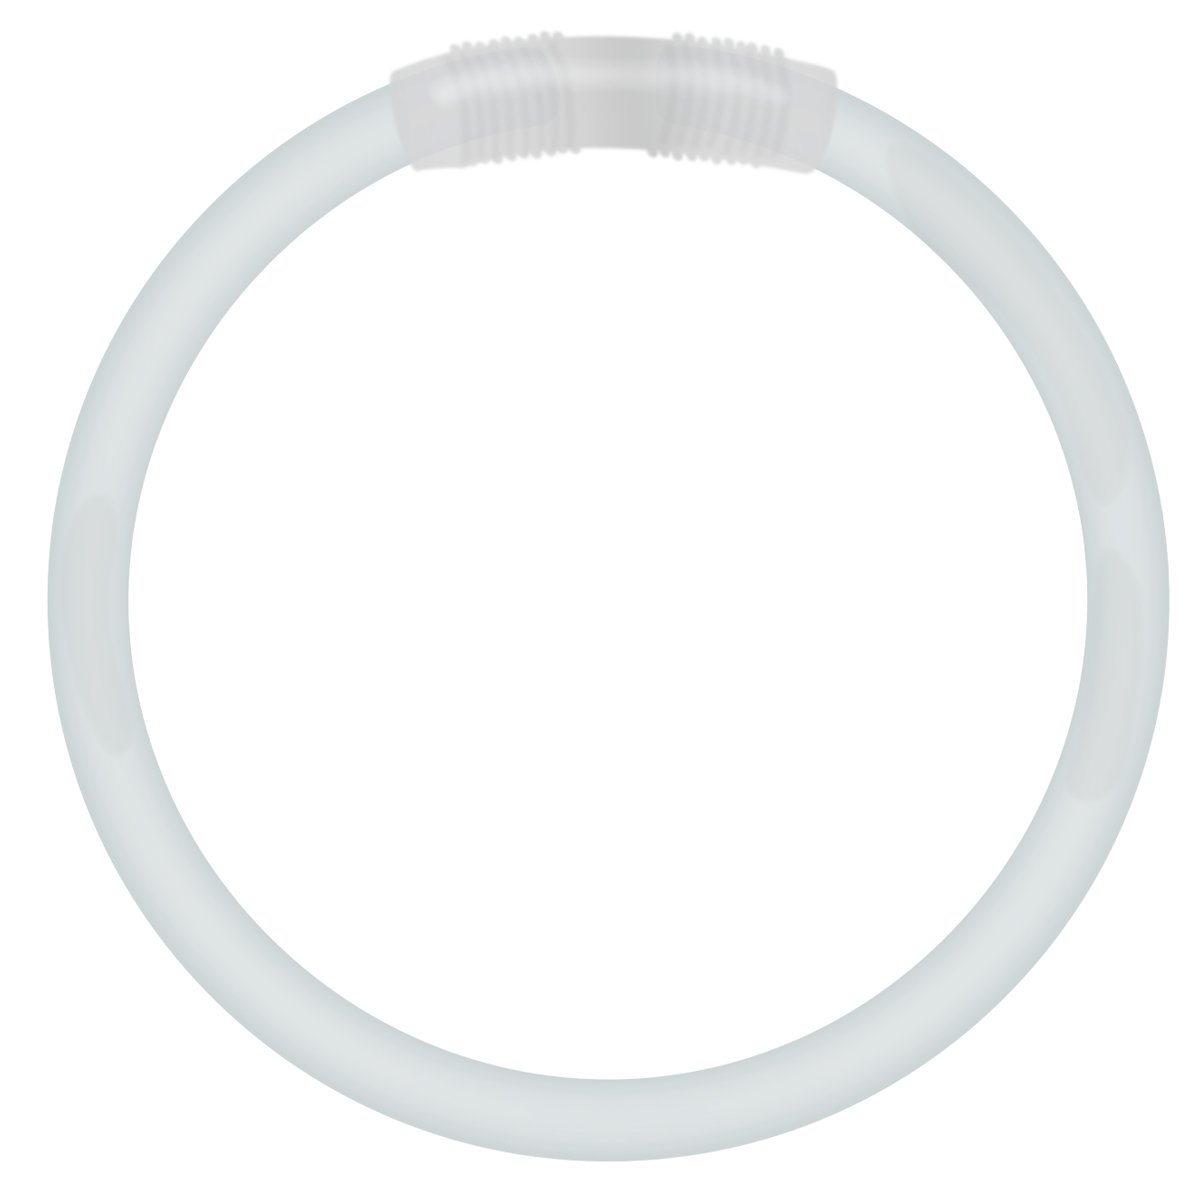 Glow Bracelet White Tube of Fifty All Products